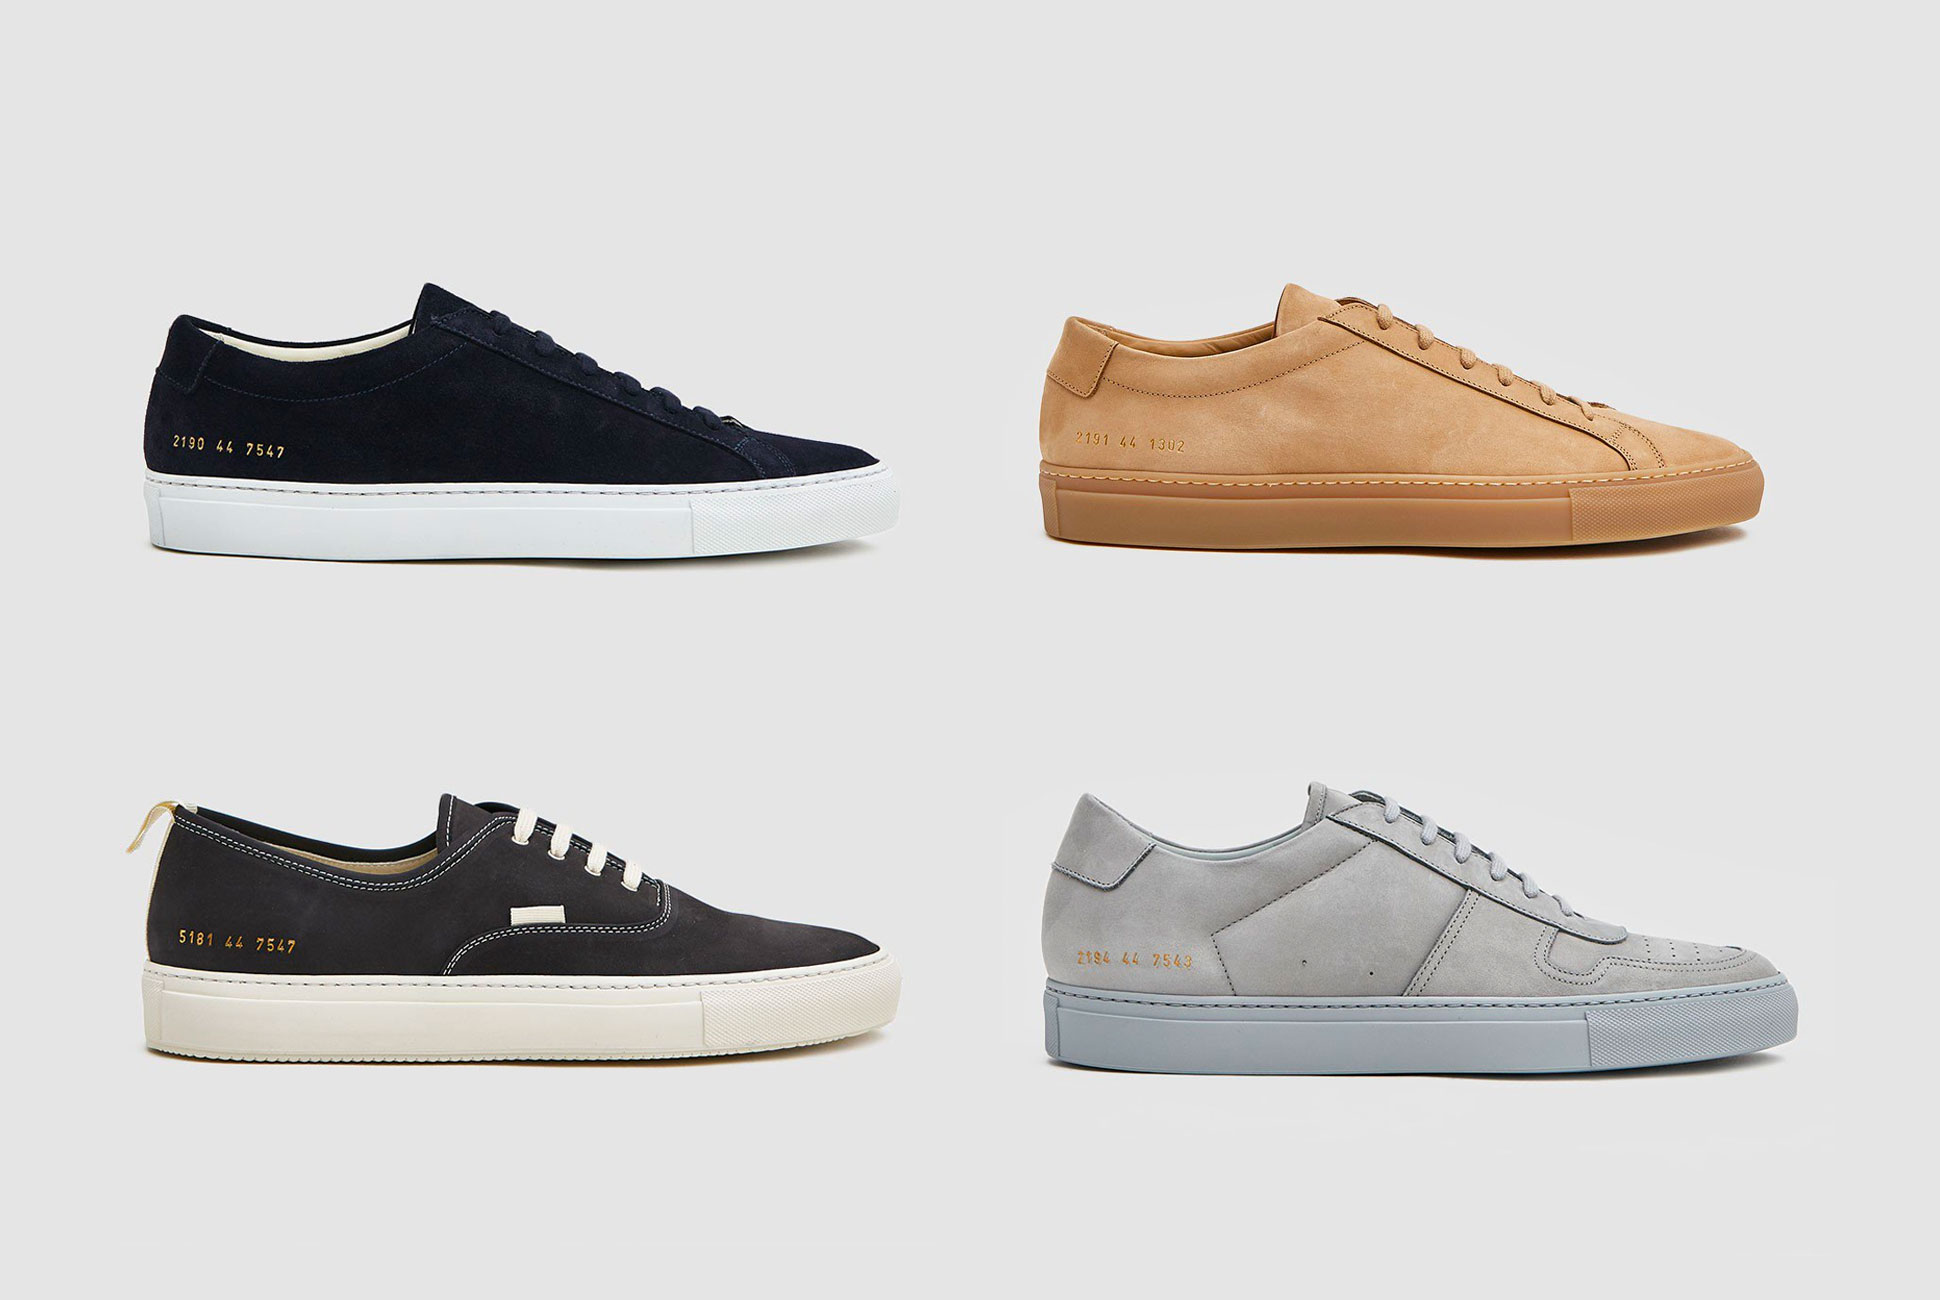 c46eb34b2135b Today's Best Deals: Discounted Common Projects Sneakers, Nearly 50% Off a  Seiko Dive Watch & More